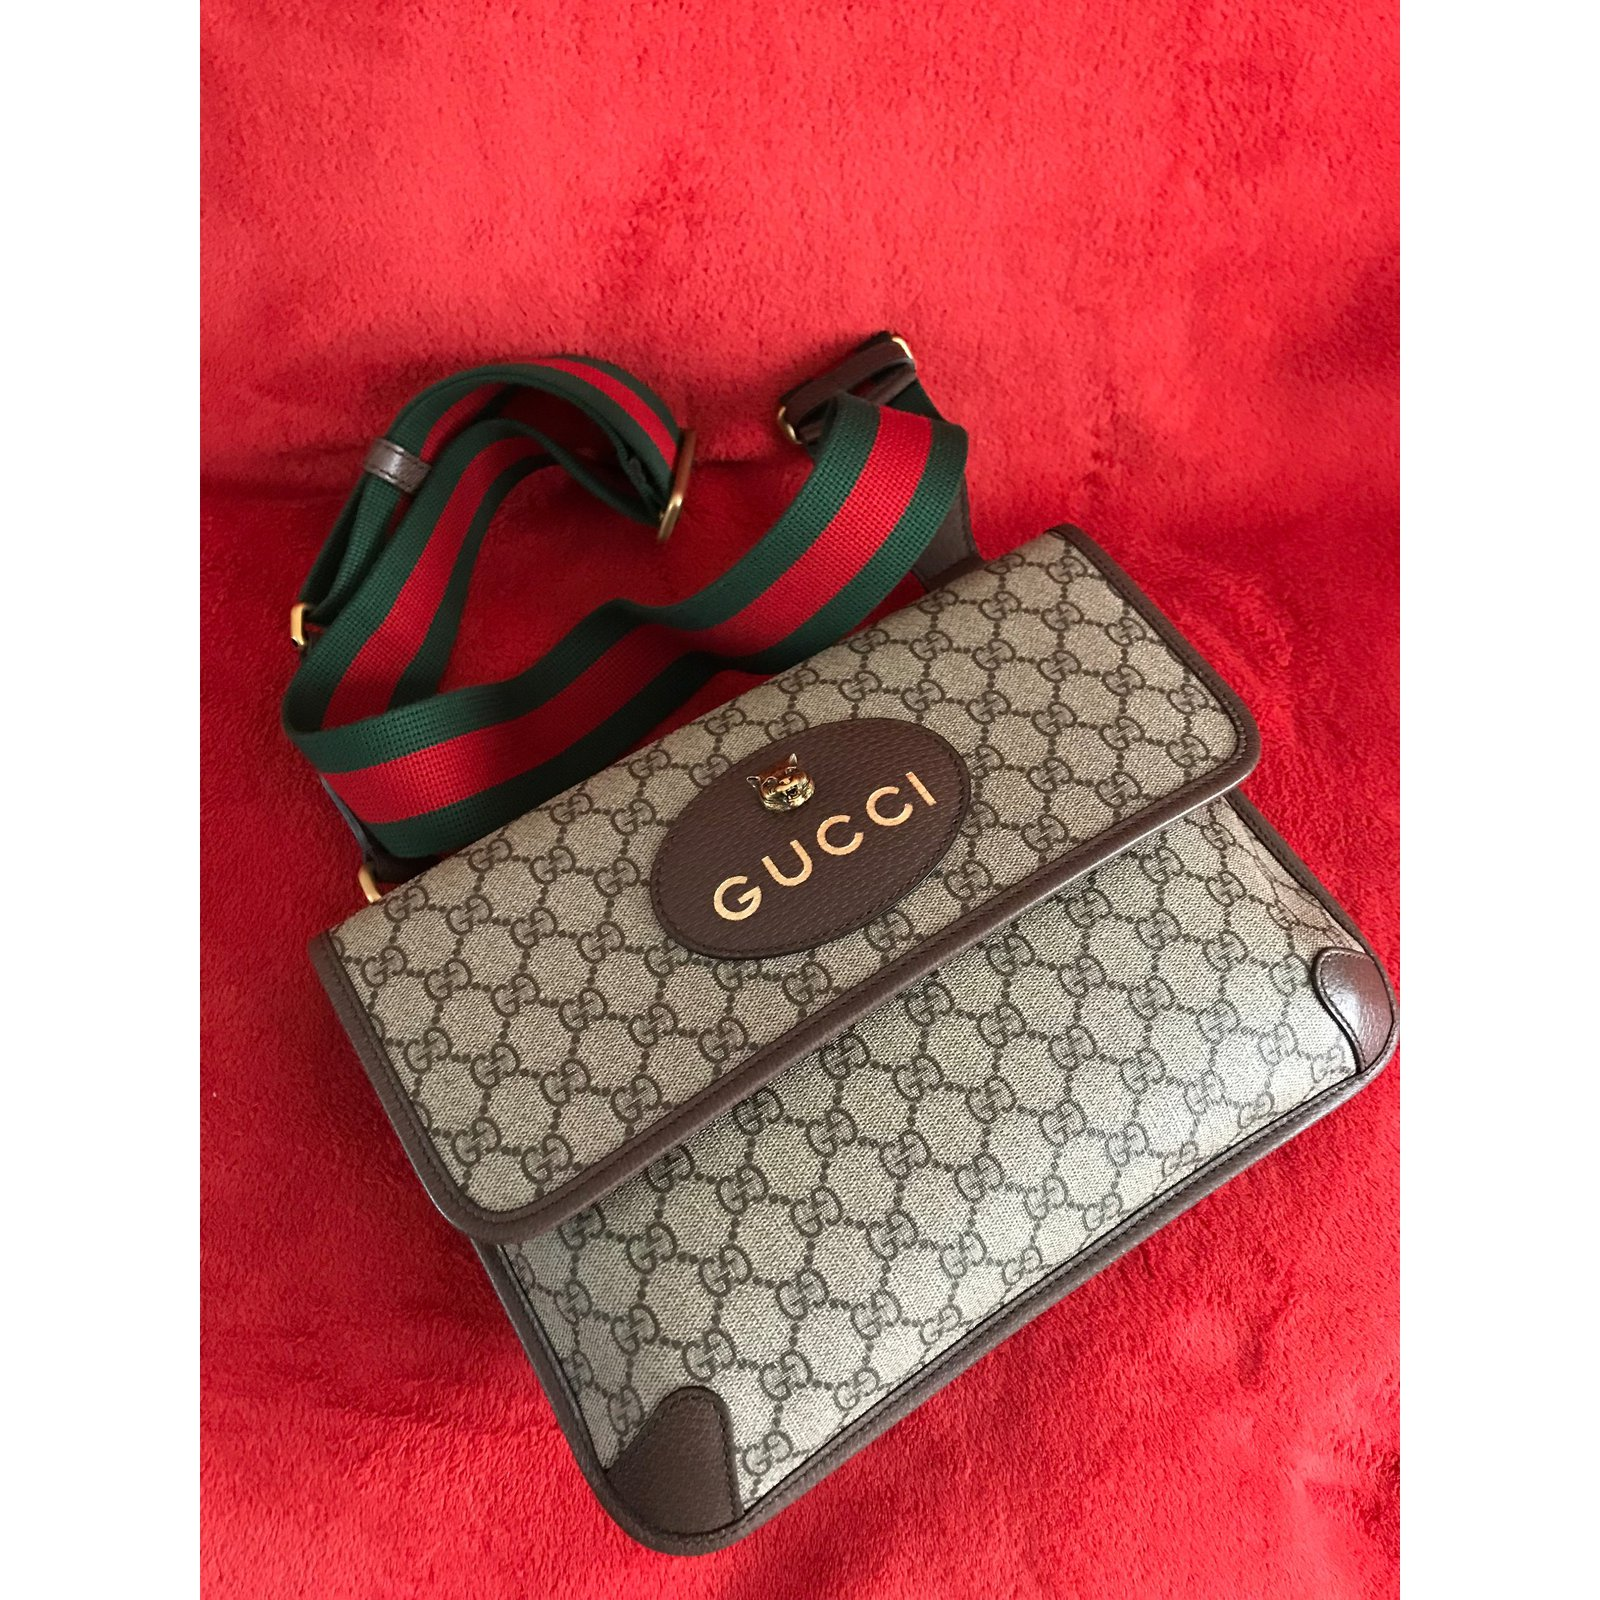 60d55aa4f999 Gucci GG Supreme messenger bag -Style ?495654 Bags Briefcases Cloth  Multiple colors ref.73080 - Joli Closet